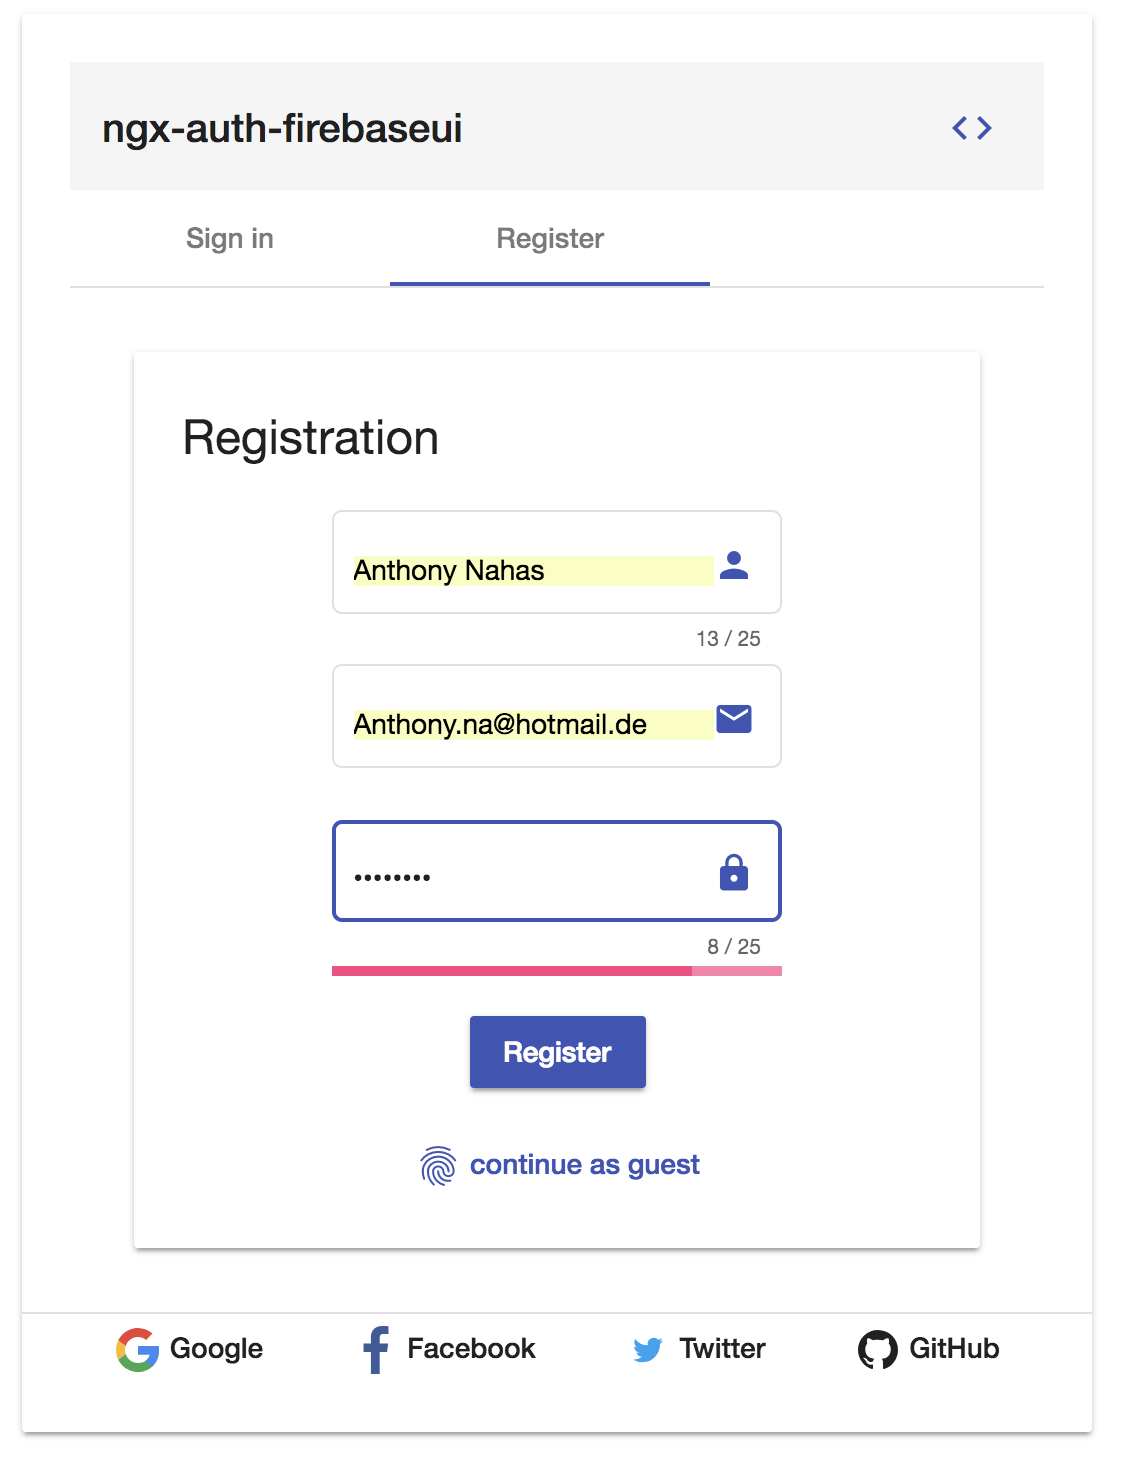 ngx-auth-firebaseui sign up